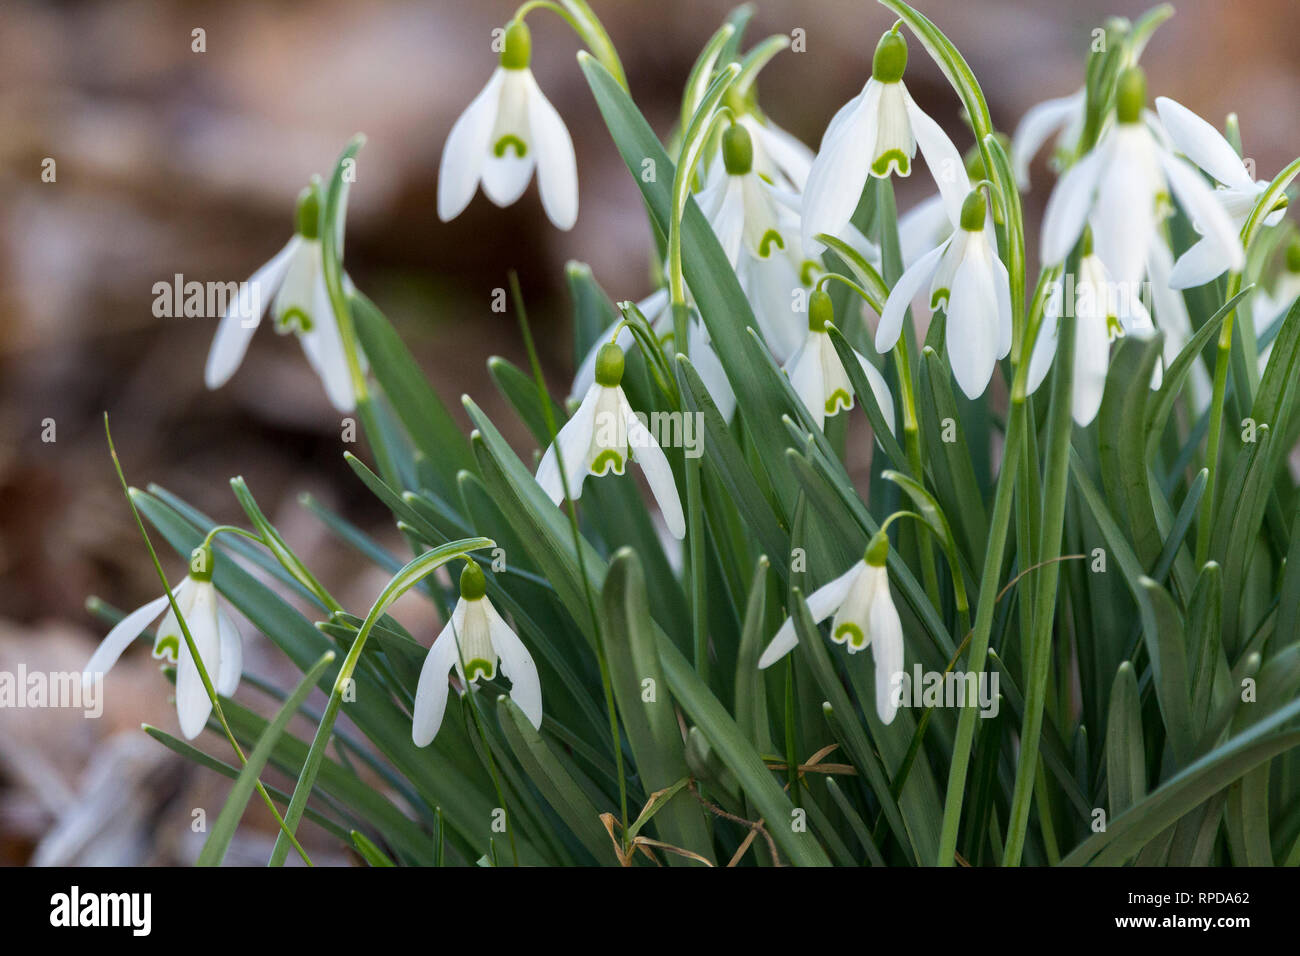 Snow drops early spring Febuary 2019 (Galanthus nivalis) three petal white flowers with single drooping blossom on each stem. Inner petals are notched - Stock Image